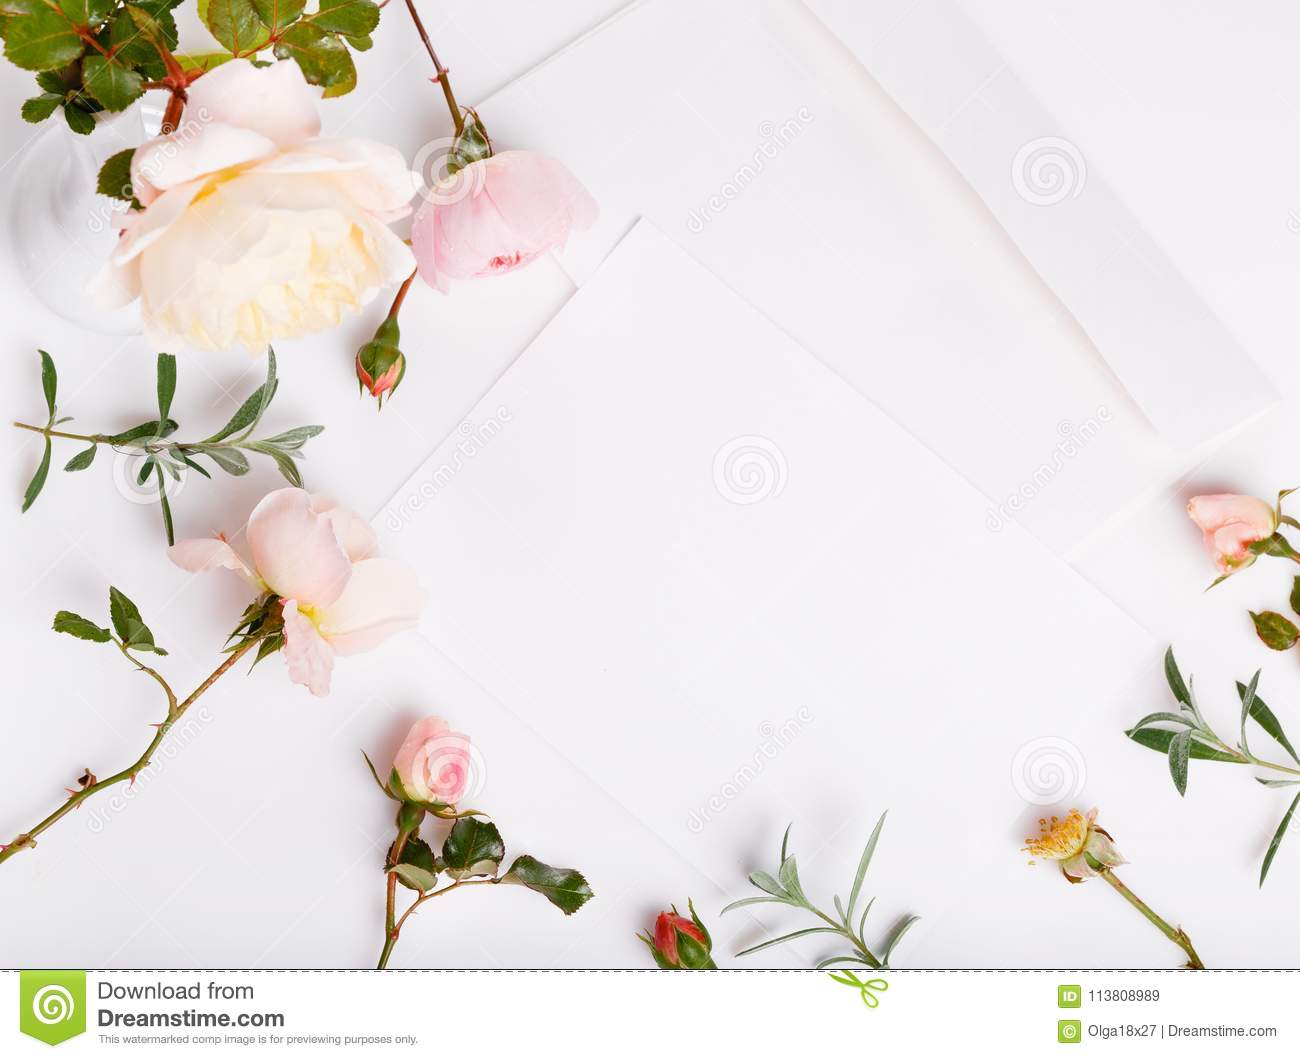 letter pen and white envelope on white background with pink english rose invitation cards